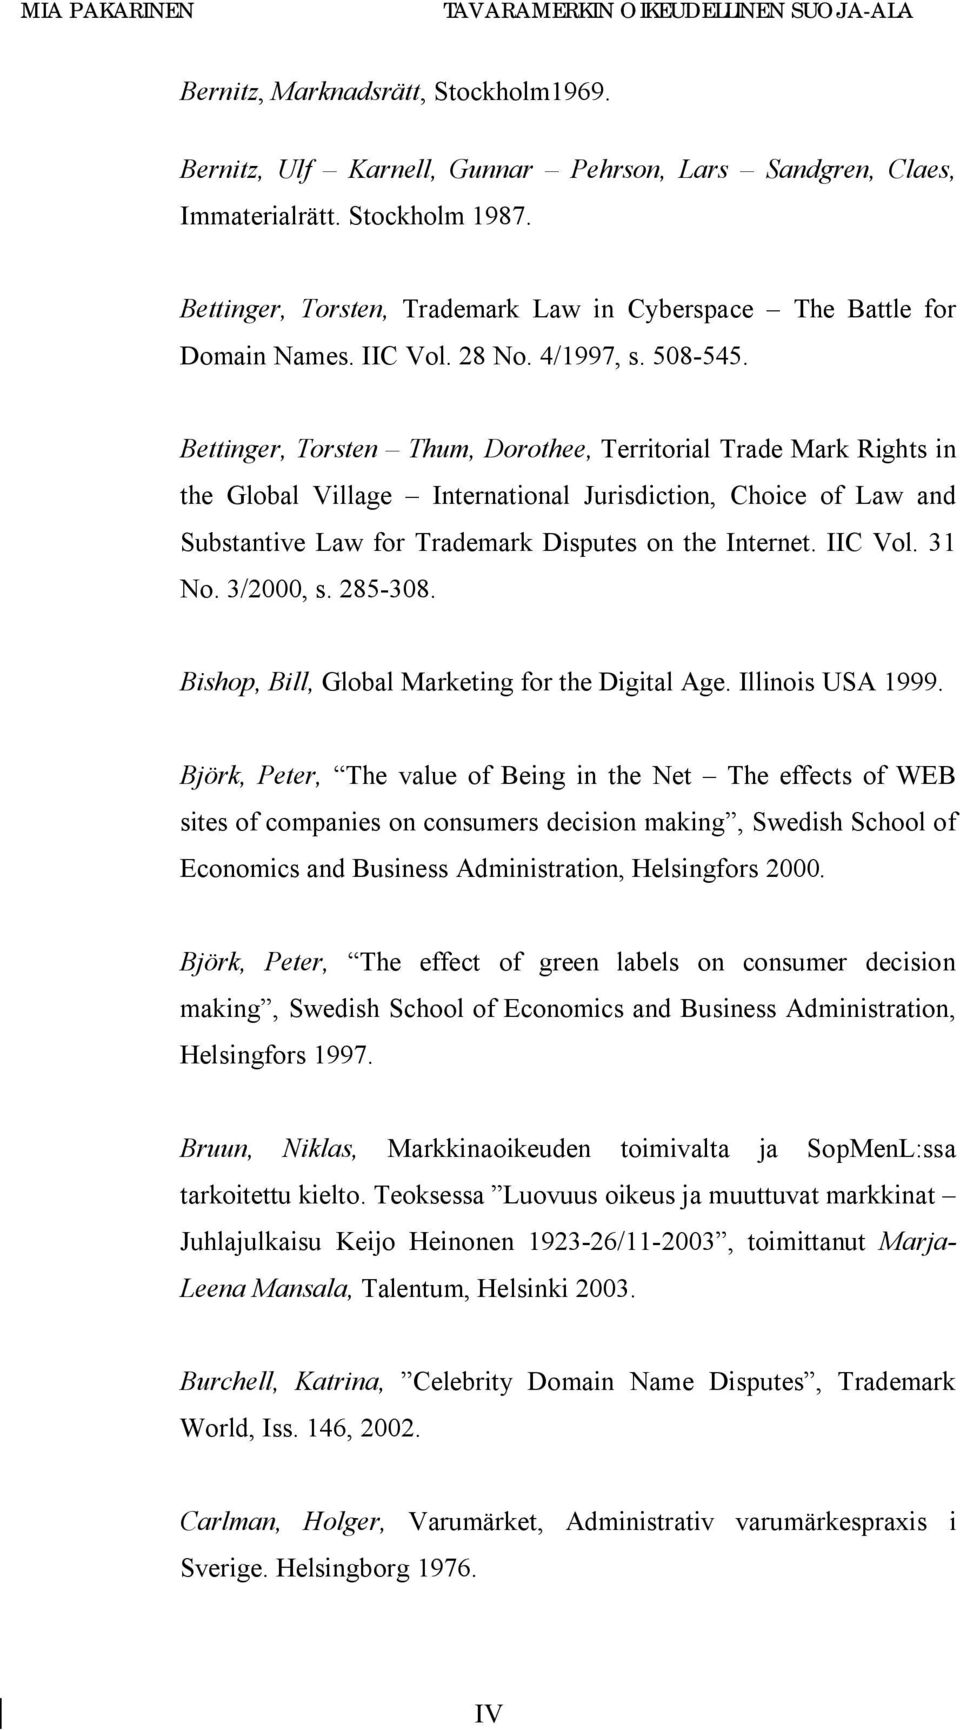 Bettinger, Torsten Thum, Dorothee, Territorial Trade Mark Rights in the Global Village International Jurisdiction, Choice of Law and Substantive Law for Trademark Disputes on the Internet. IIC Vol.